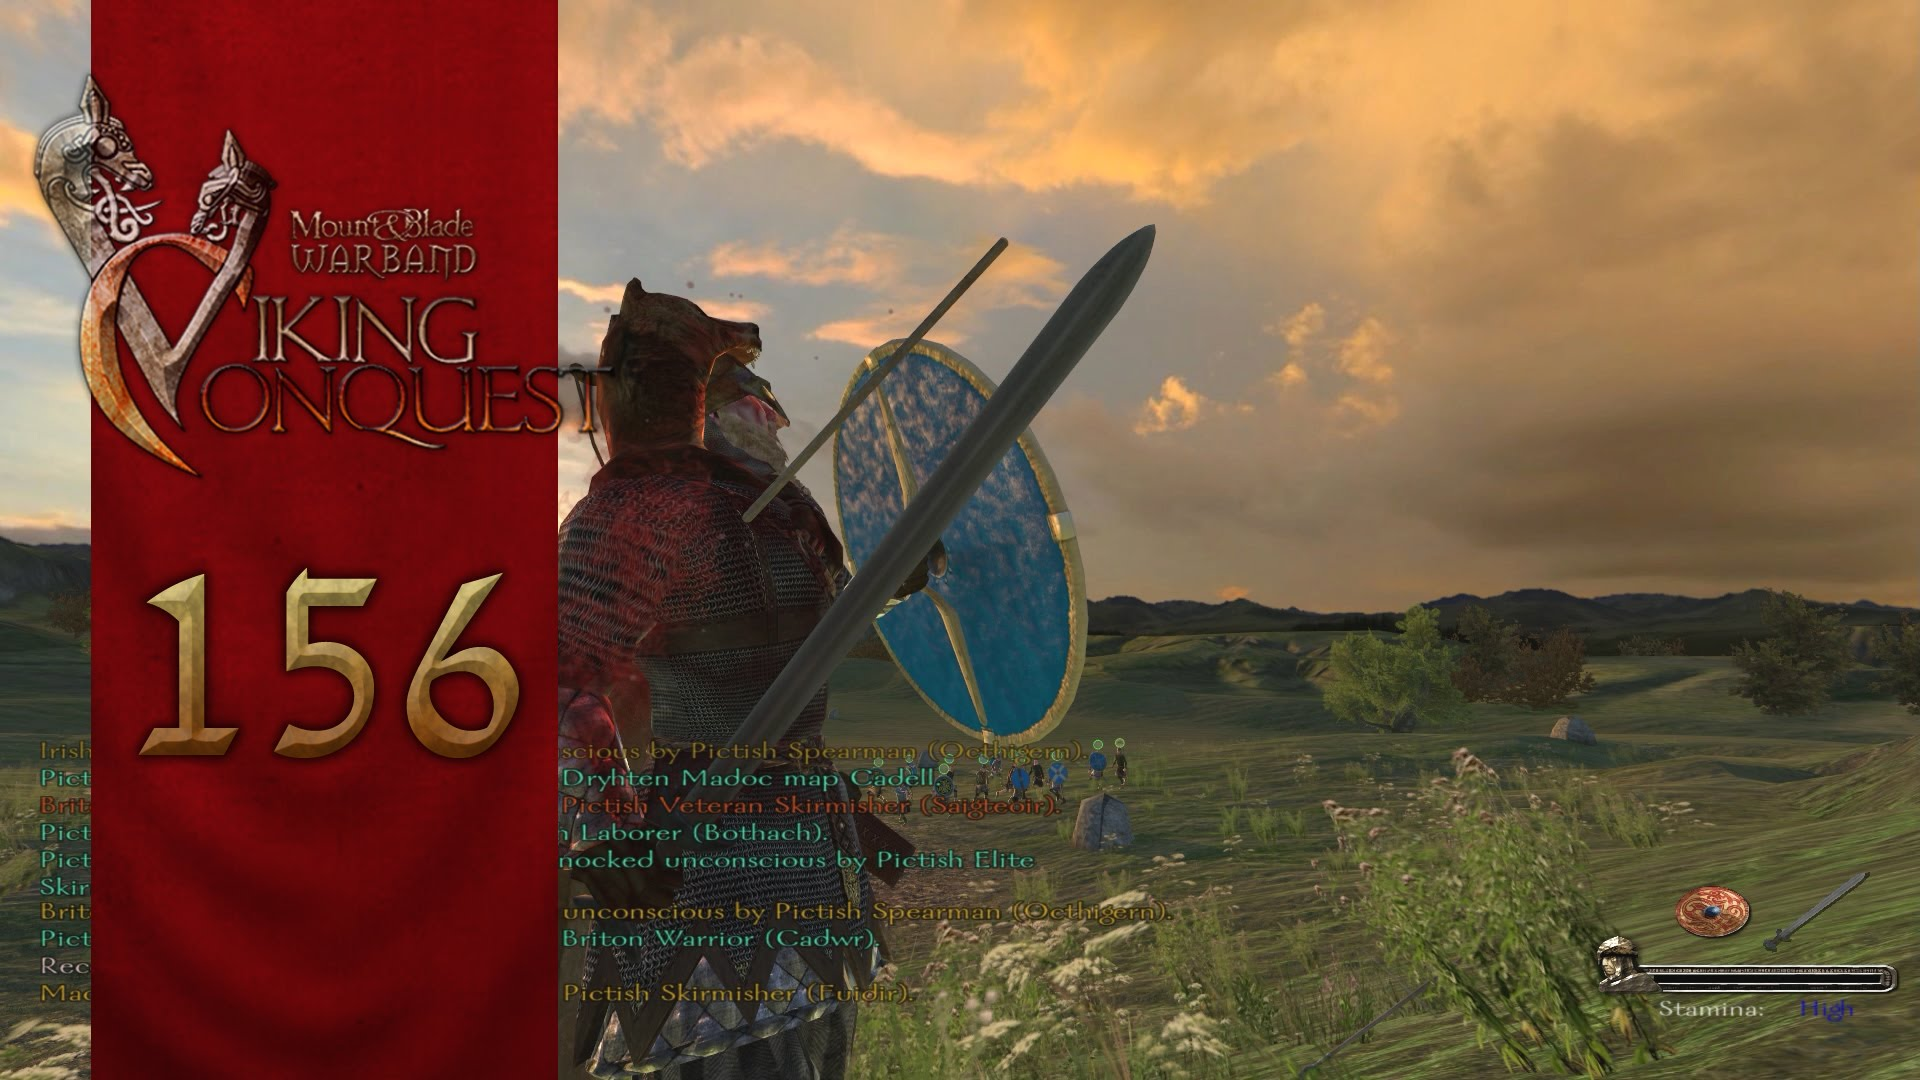 Mount and blade warband dlc viking conquest lets play mount and blade warband dlc viking conquest lets play gameplay episode 156 cuil nam macghriogair gumiabroncs Choice Image